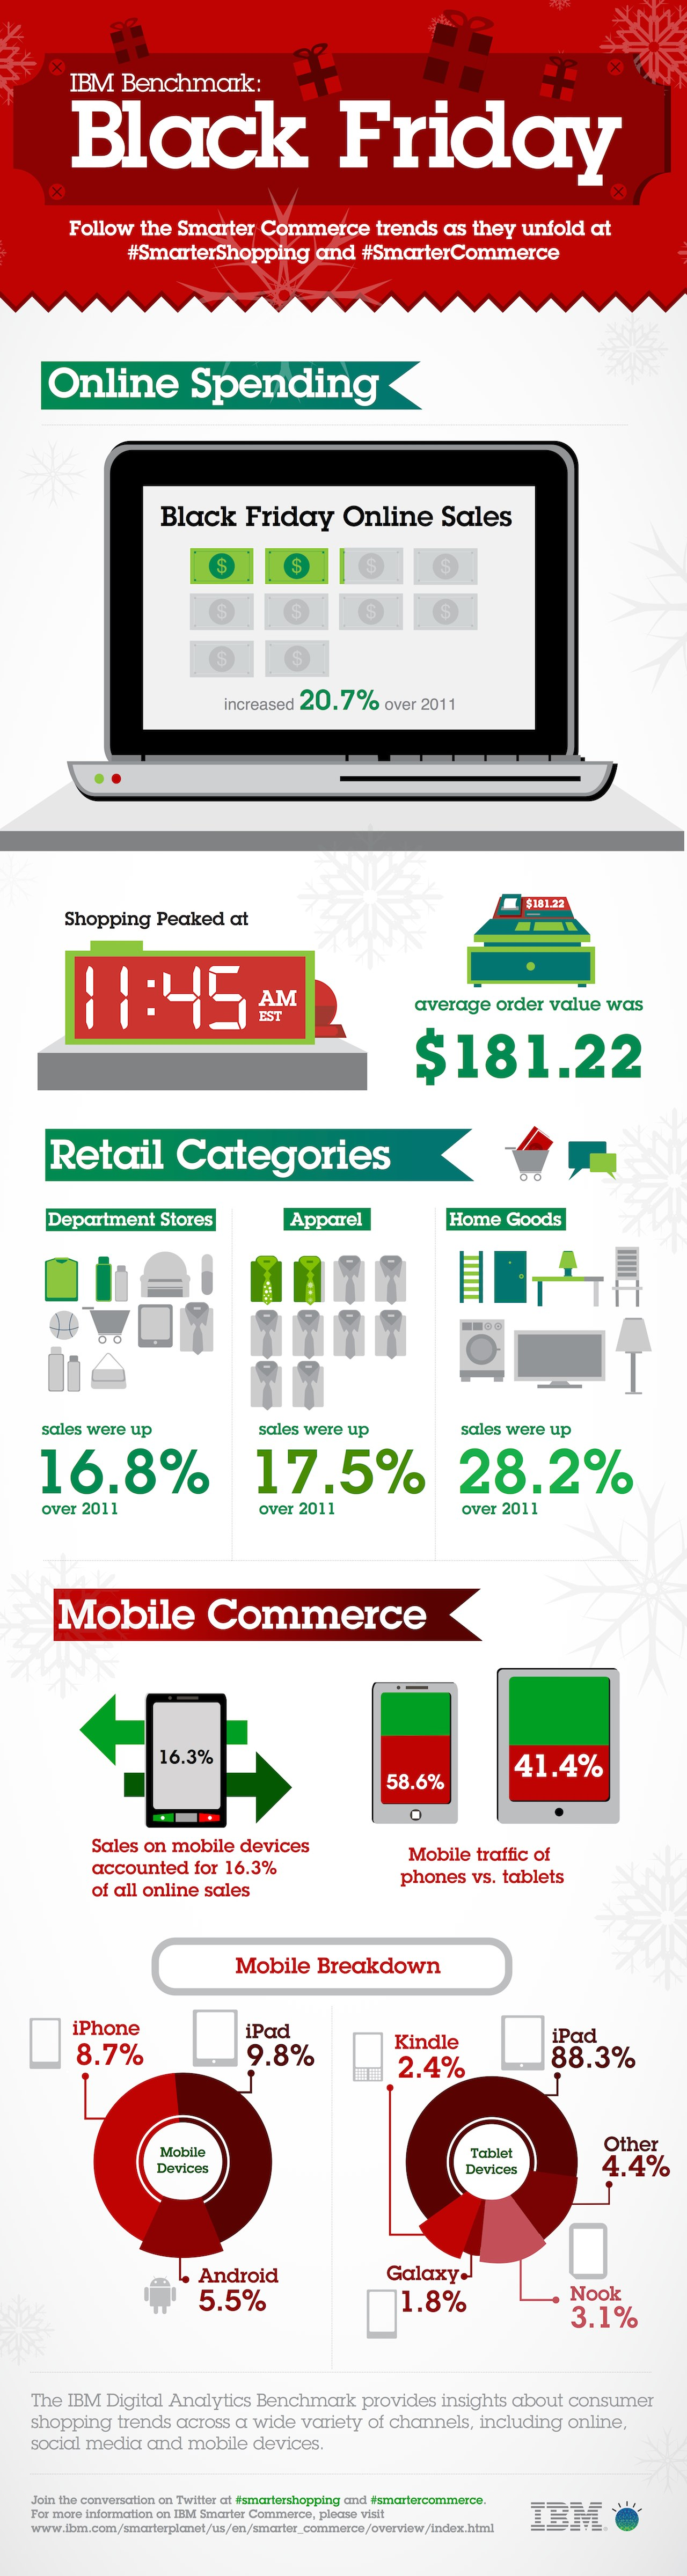 Black Friday 2012 Infographic